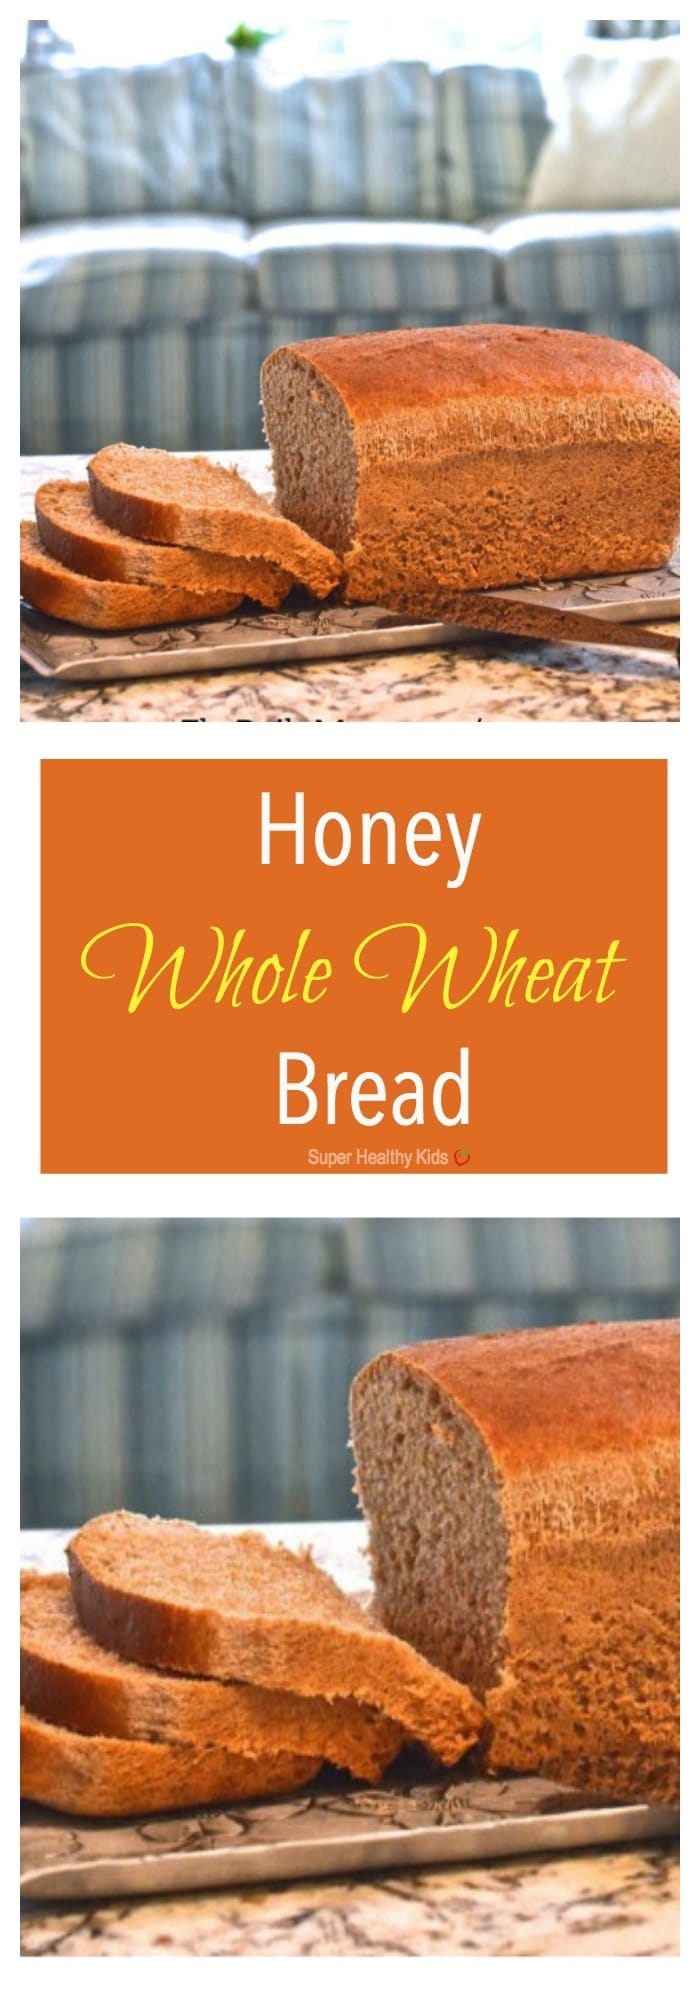 Honey Whole Wheat Bread. This simple recipe contains just 6 ingredients and requires a mere 10 minutes of hands-on time. http://www.superhealthykids.com/honey-whole-wheat-bread/